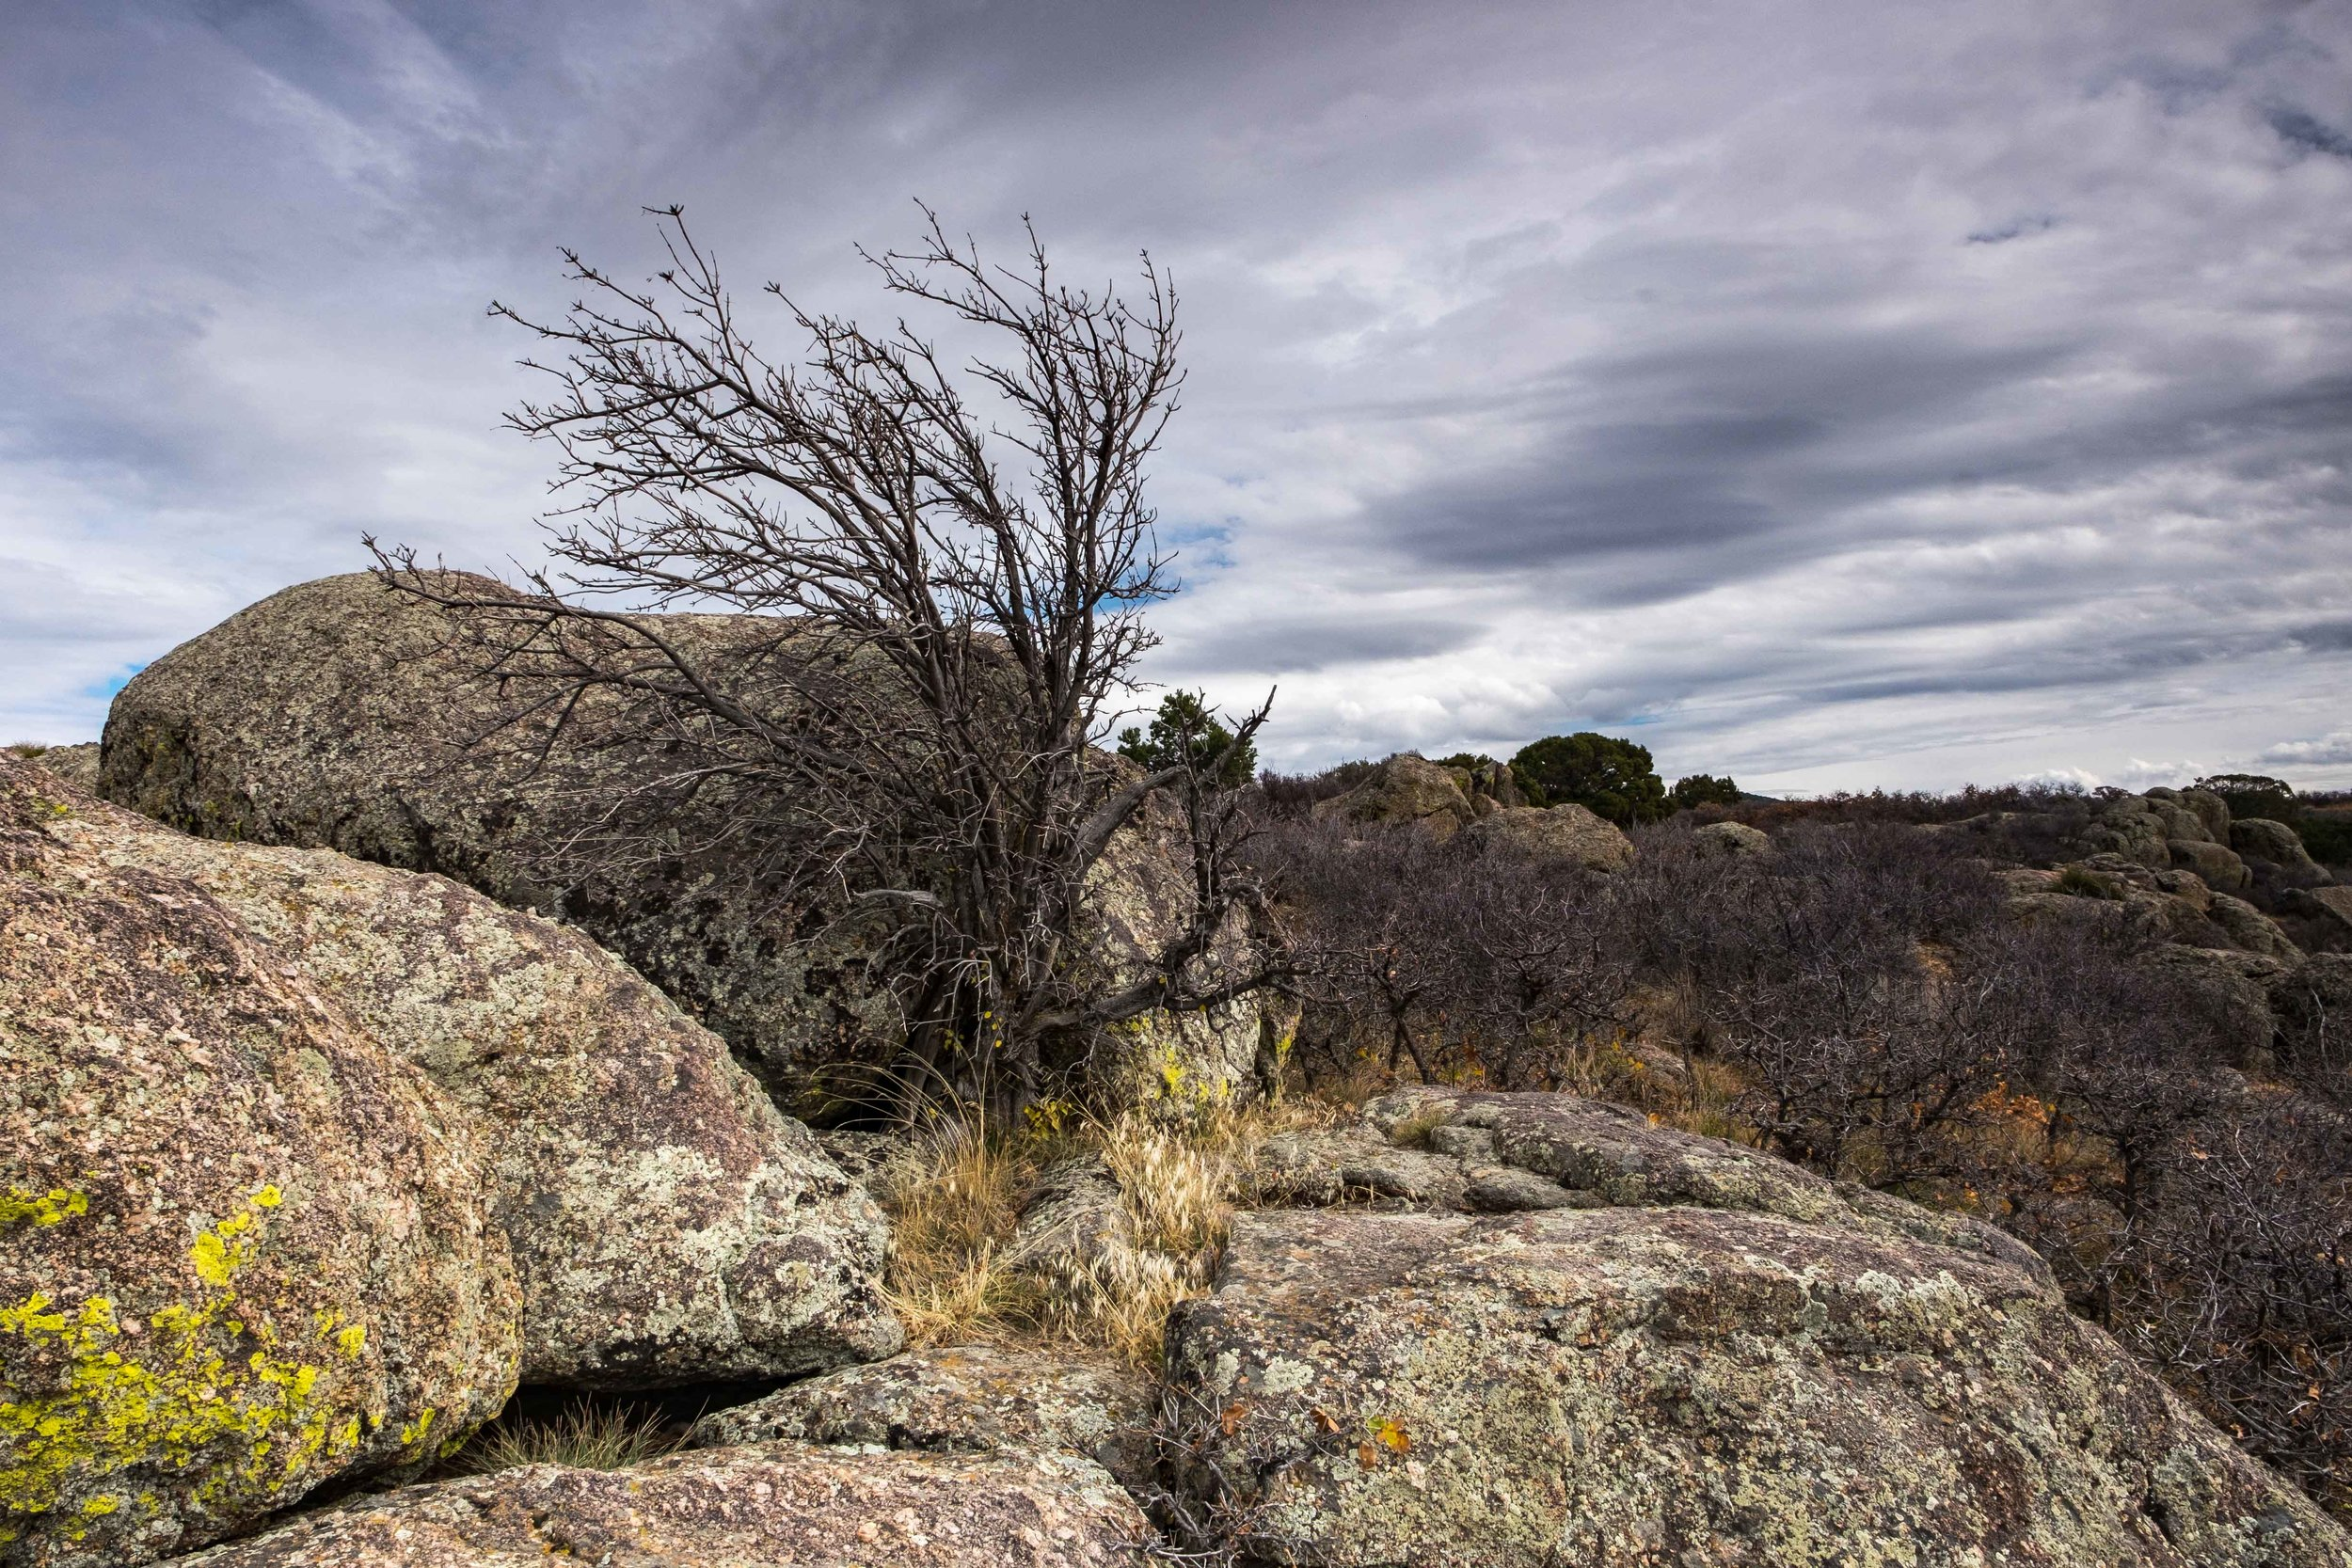 The surrounding rock and vegetation is also really interesting.